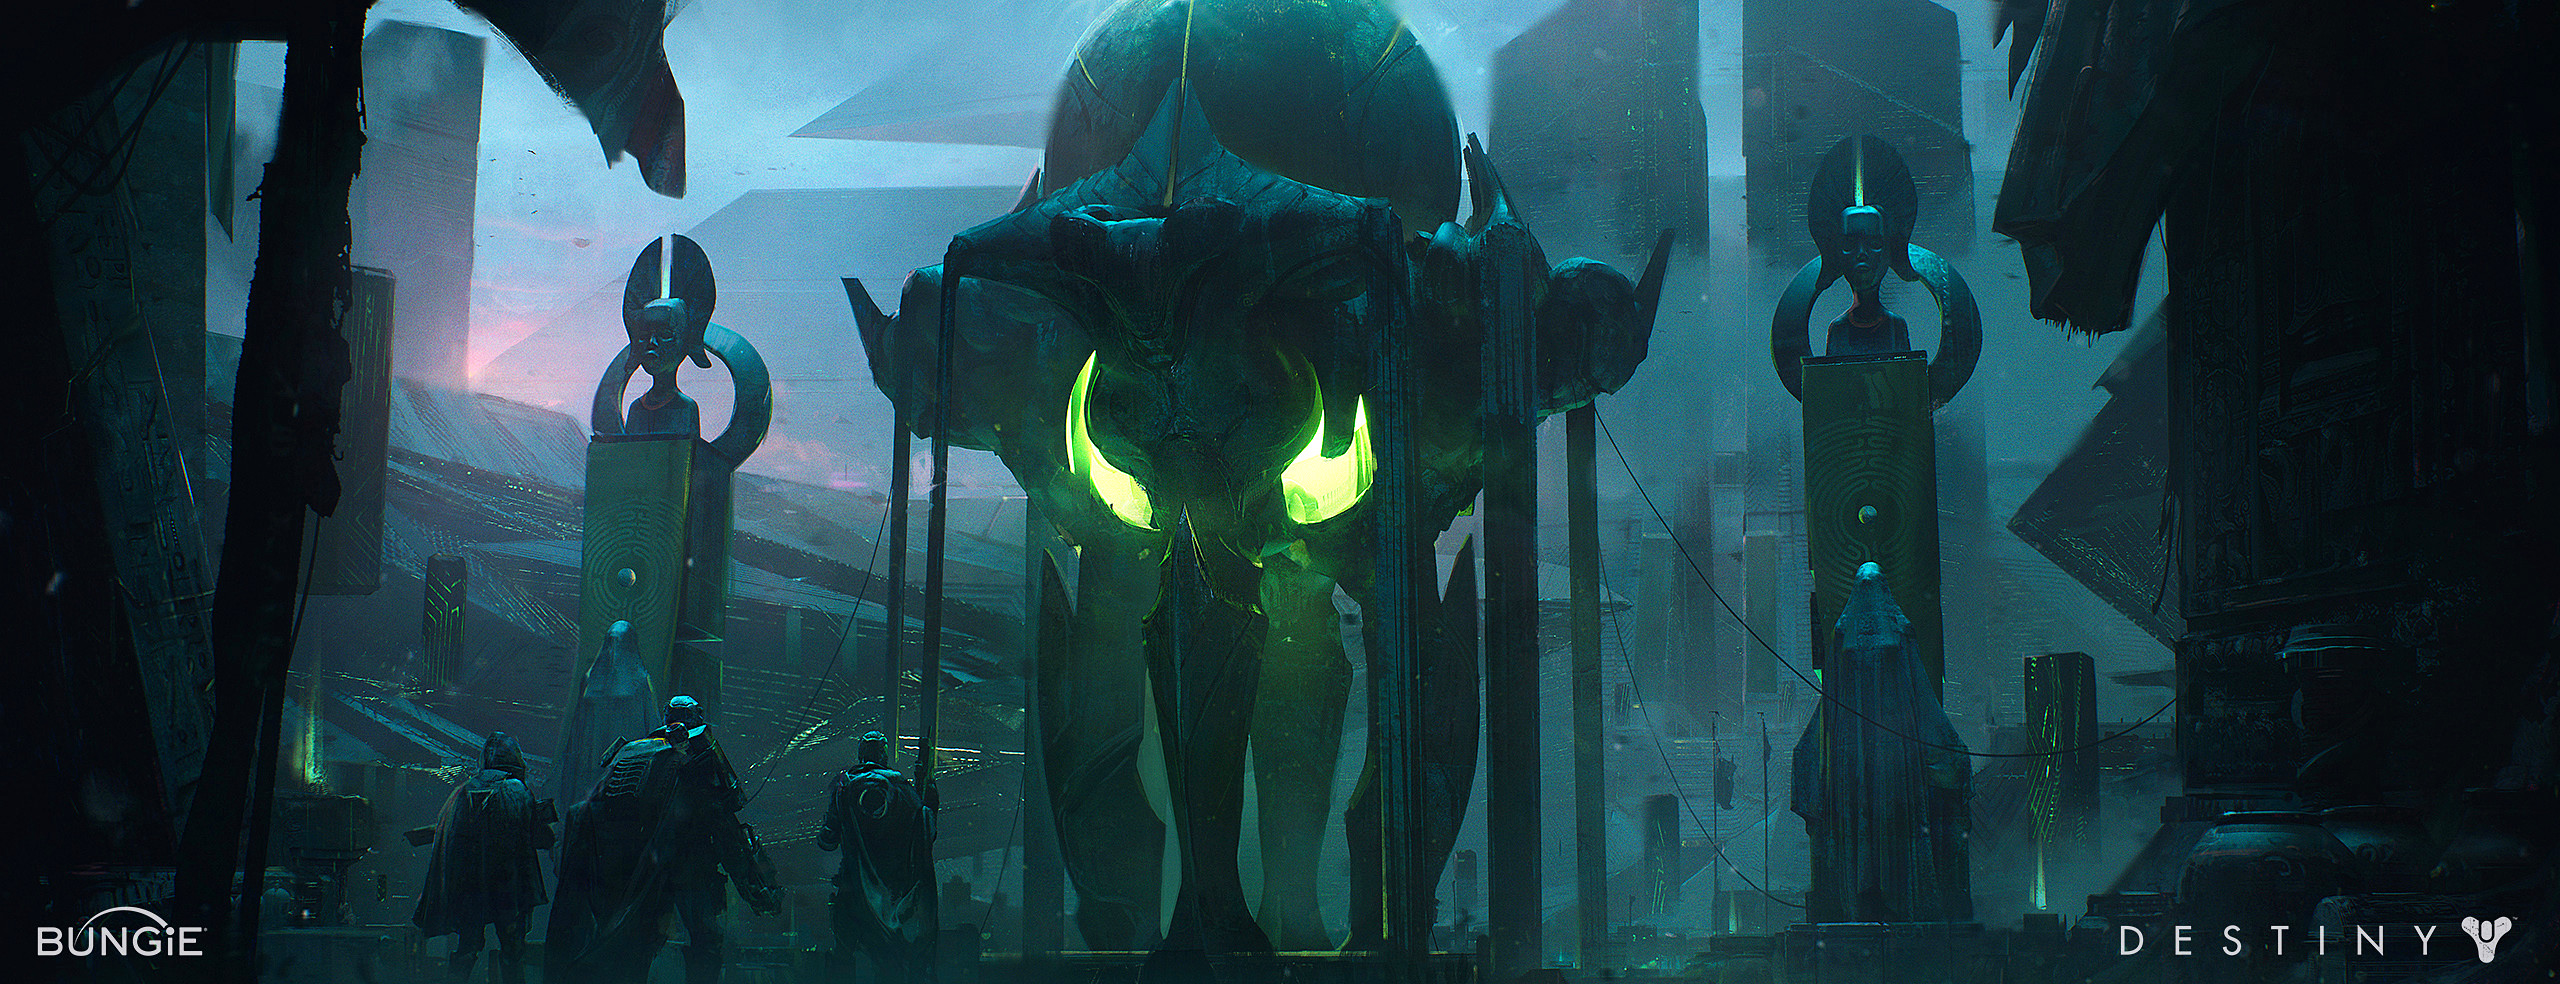 bungie fantasy scifi alien worldbuilding design photoshop